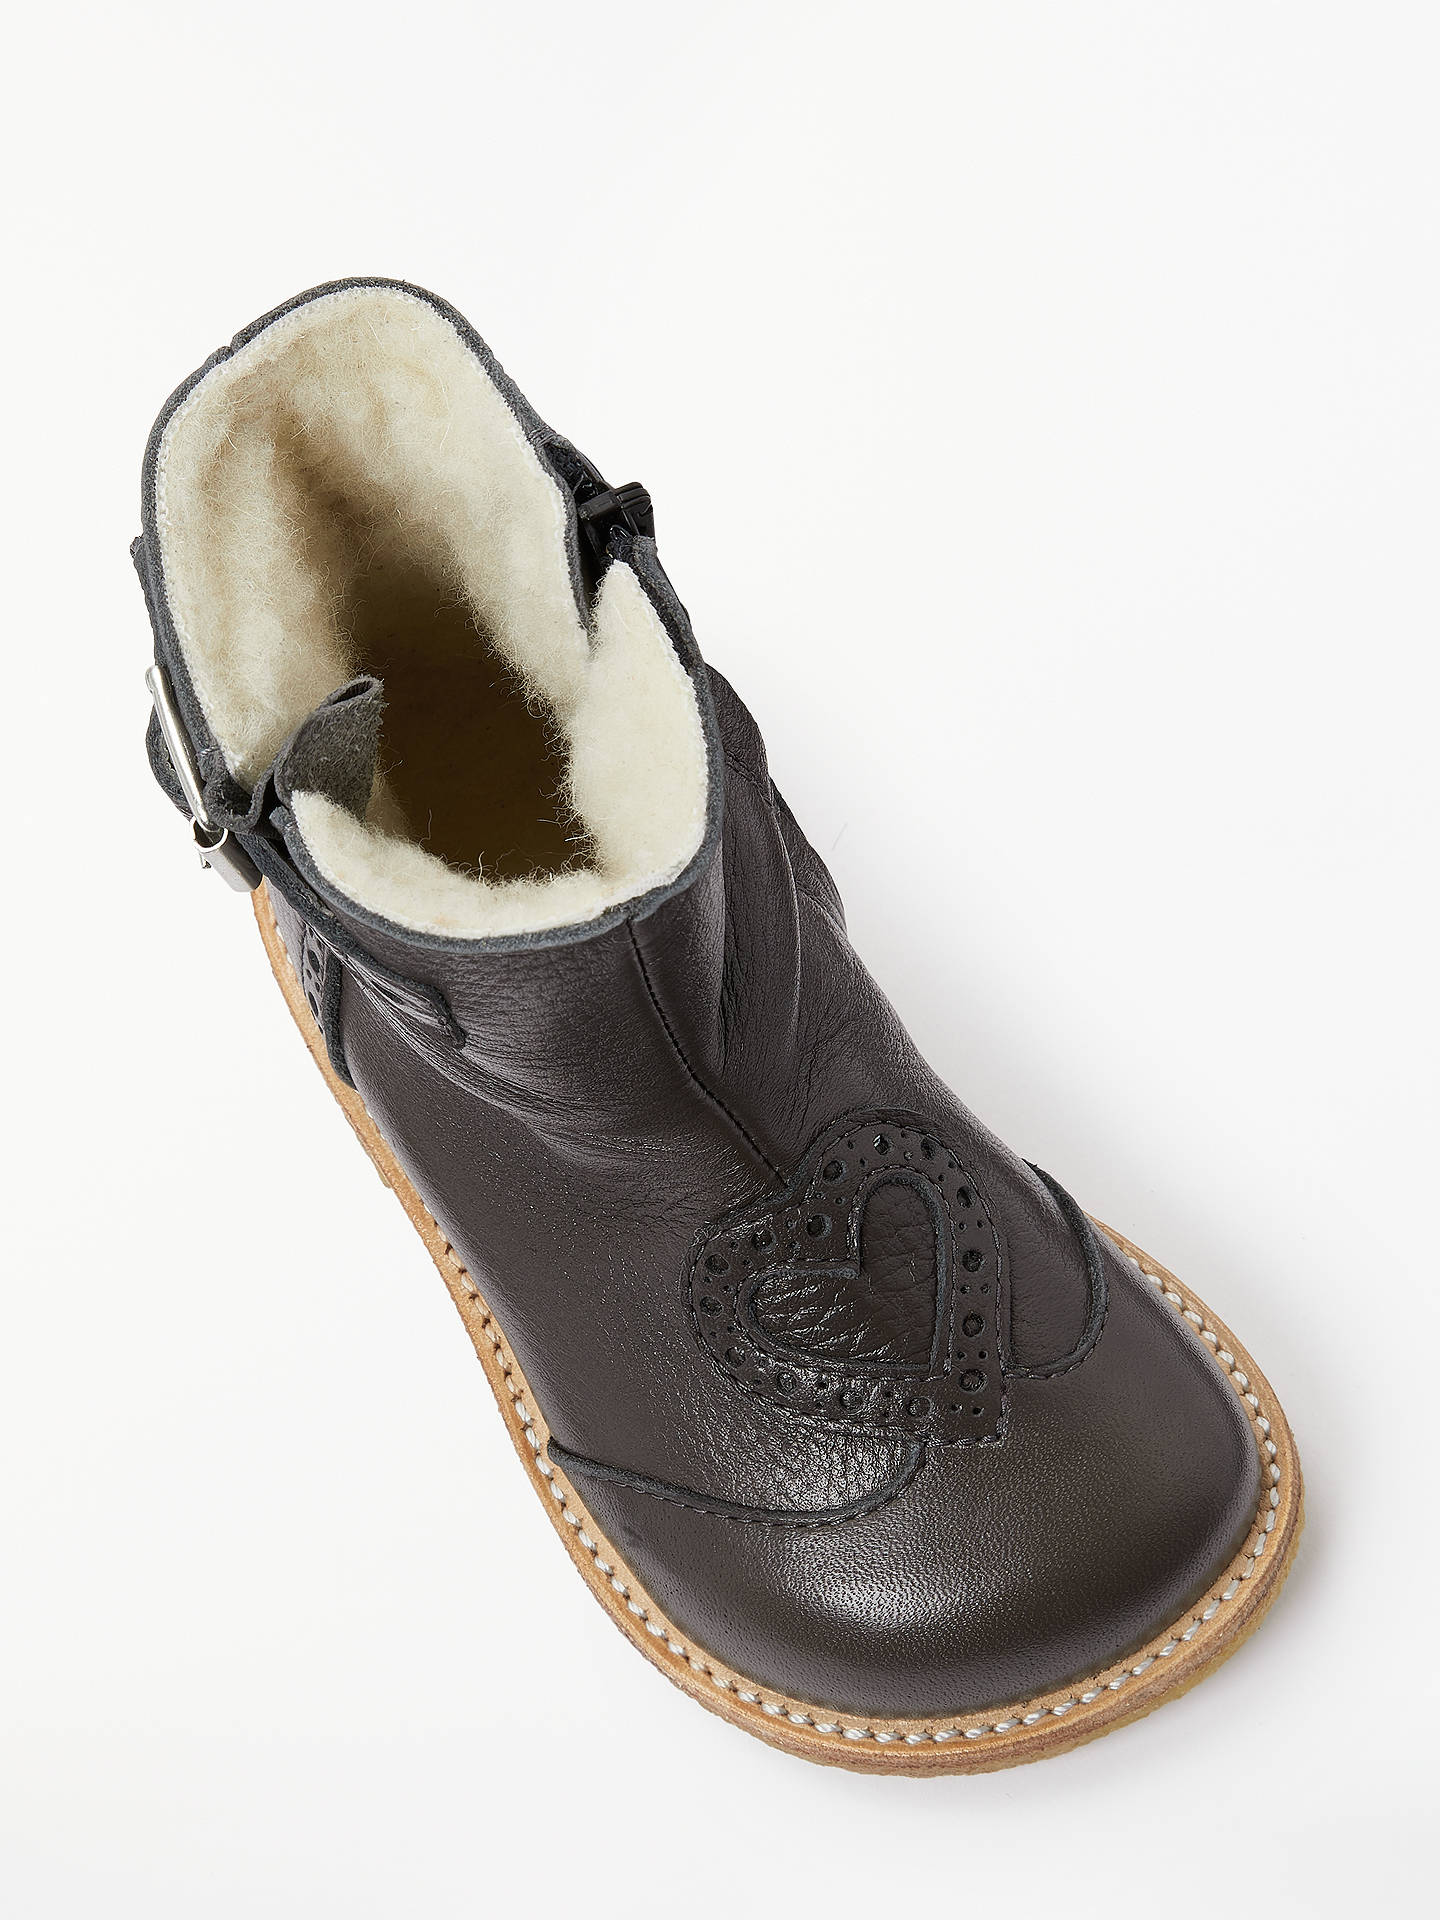 BuyANGULUS Children's Heart Mid Boots, Grey, 28 Online at johnlewis.com